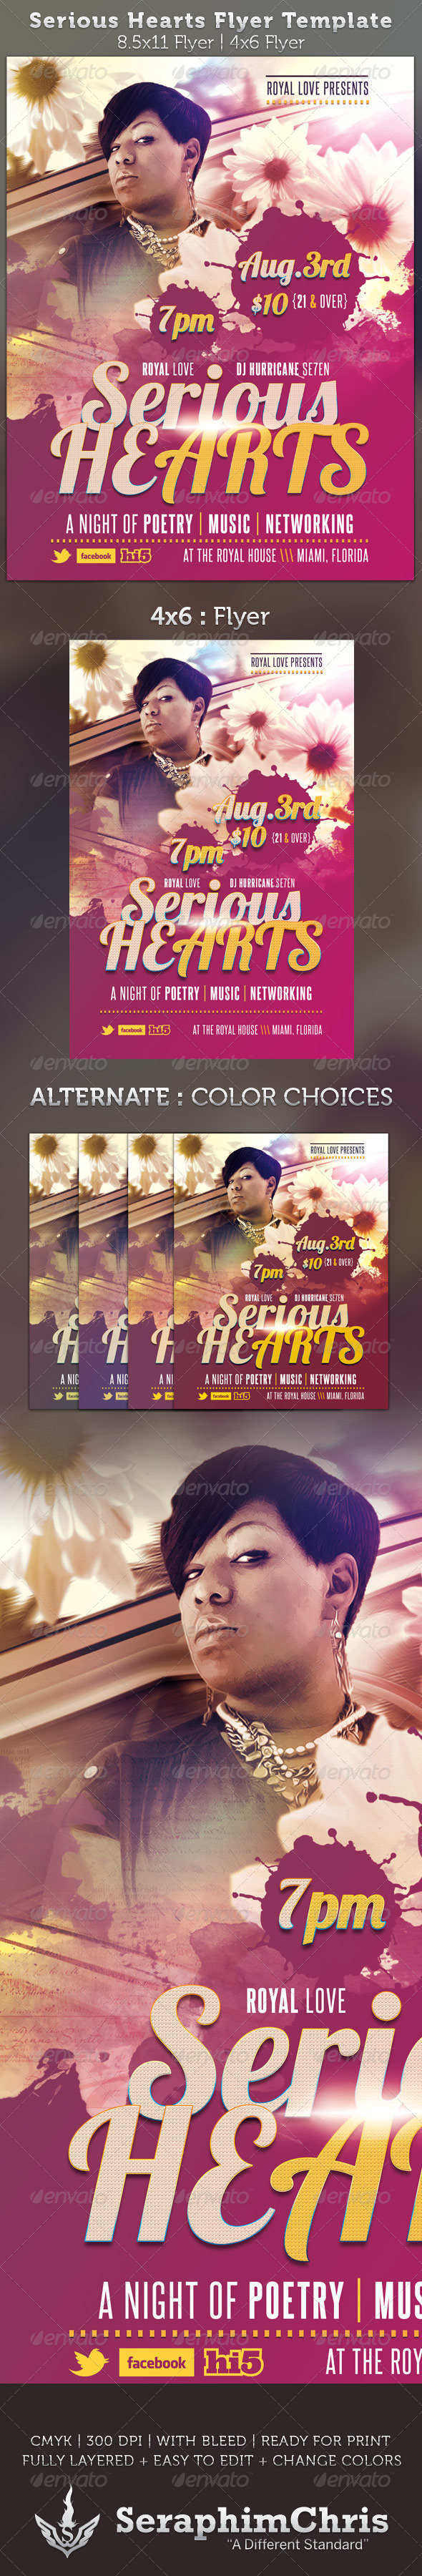 Serious Hearts Flyer Template - Events Flyers